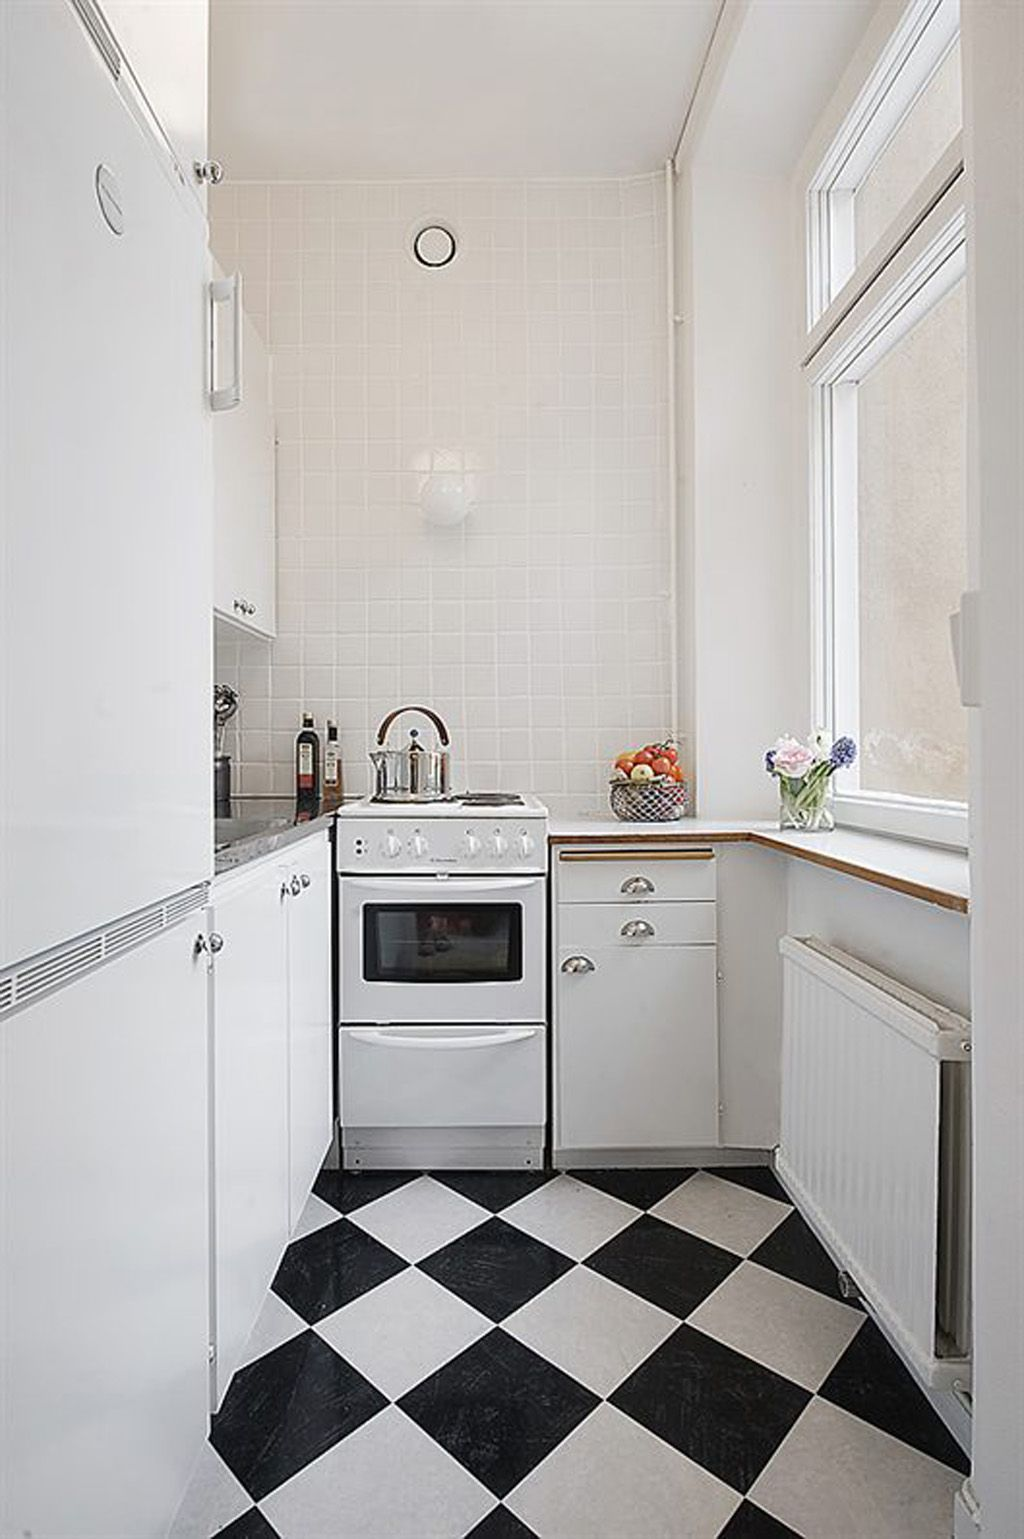 Good Black And White Kitchen Floor Ideas Part - 9: Tasteful Design Striking Black White Kitchen Tile - OnArchitectureSite.Com